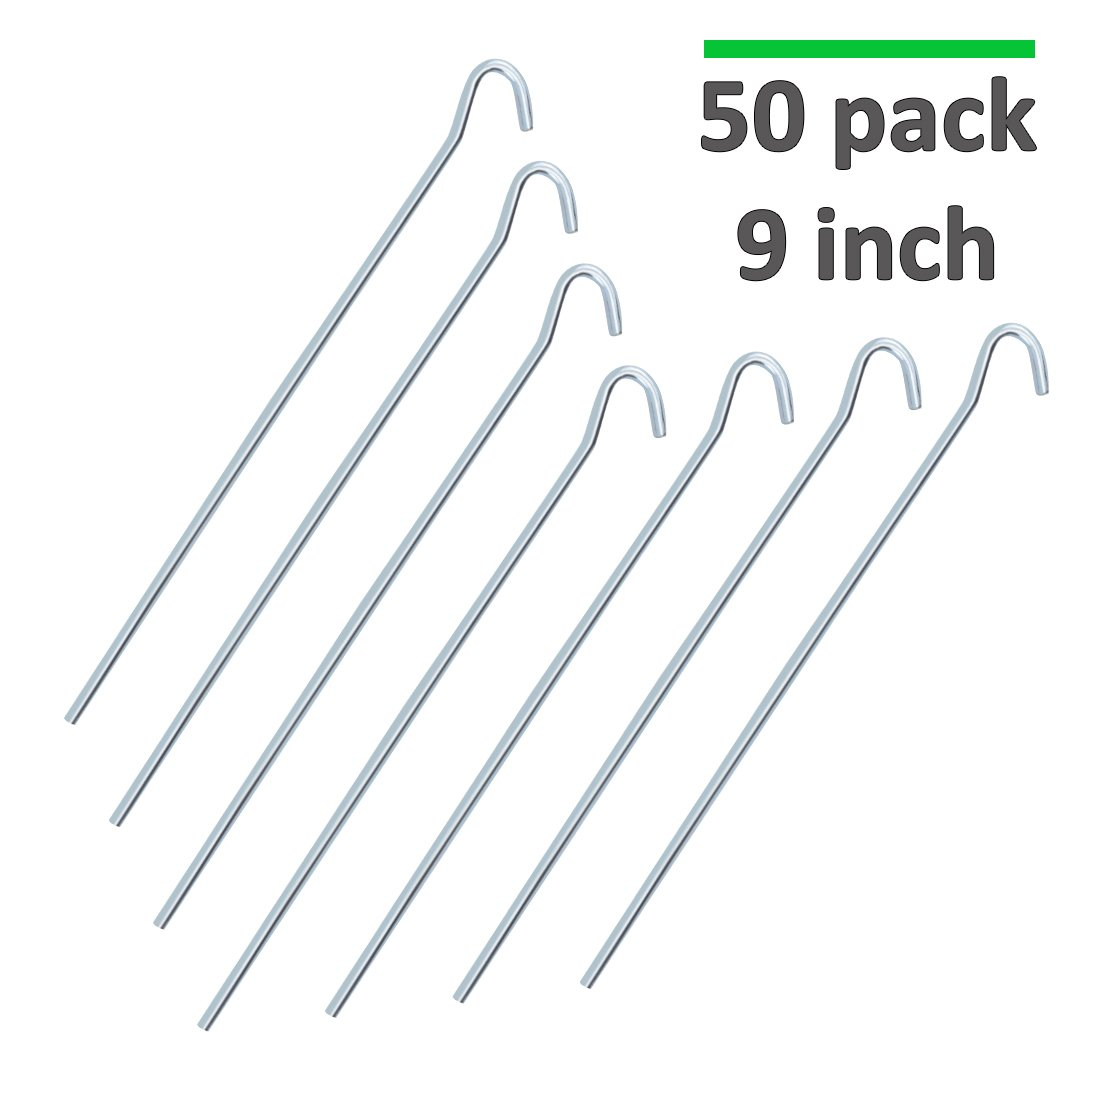 GROWNEER 50-Pack 9'' Heavy Duty Garden Stakes 8 Gauge Galvanized Steel Tent Pegs for Securing Weed Fabric Landscape Fabric, Anchoring Netting Canopies Tarp